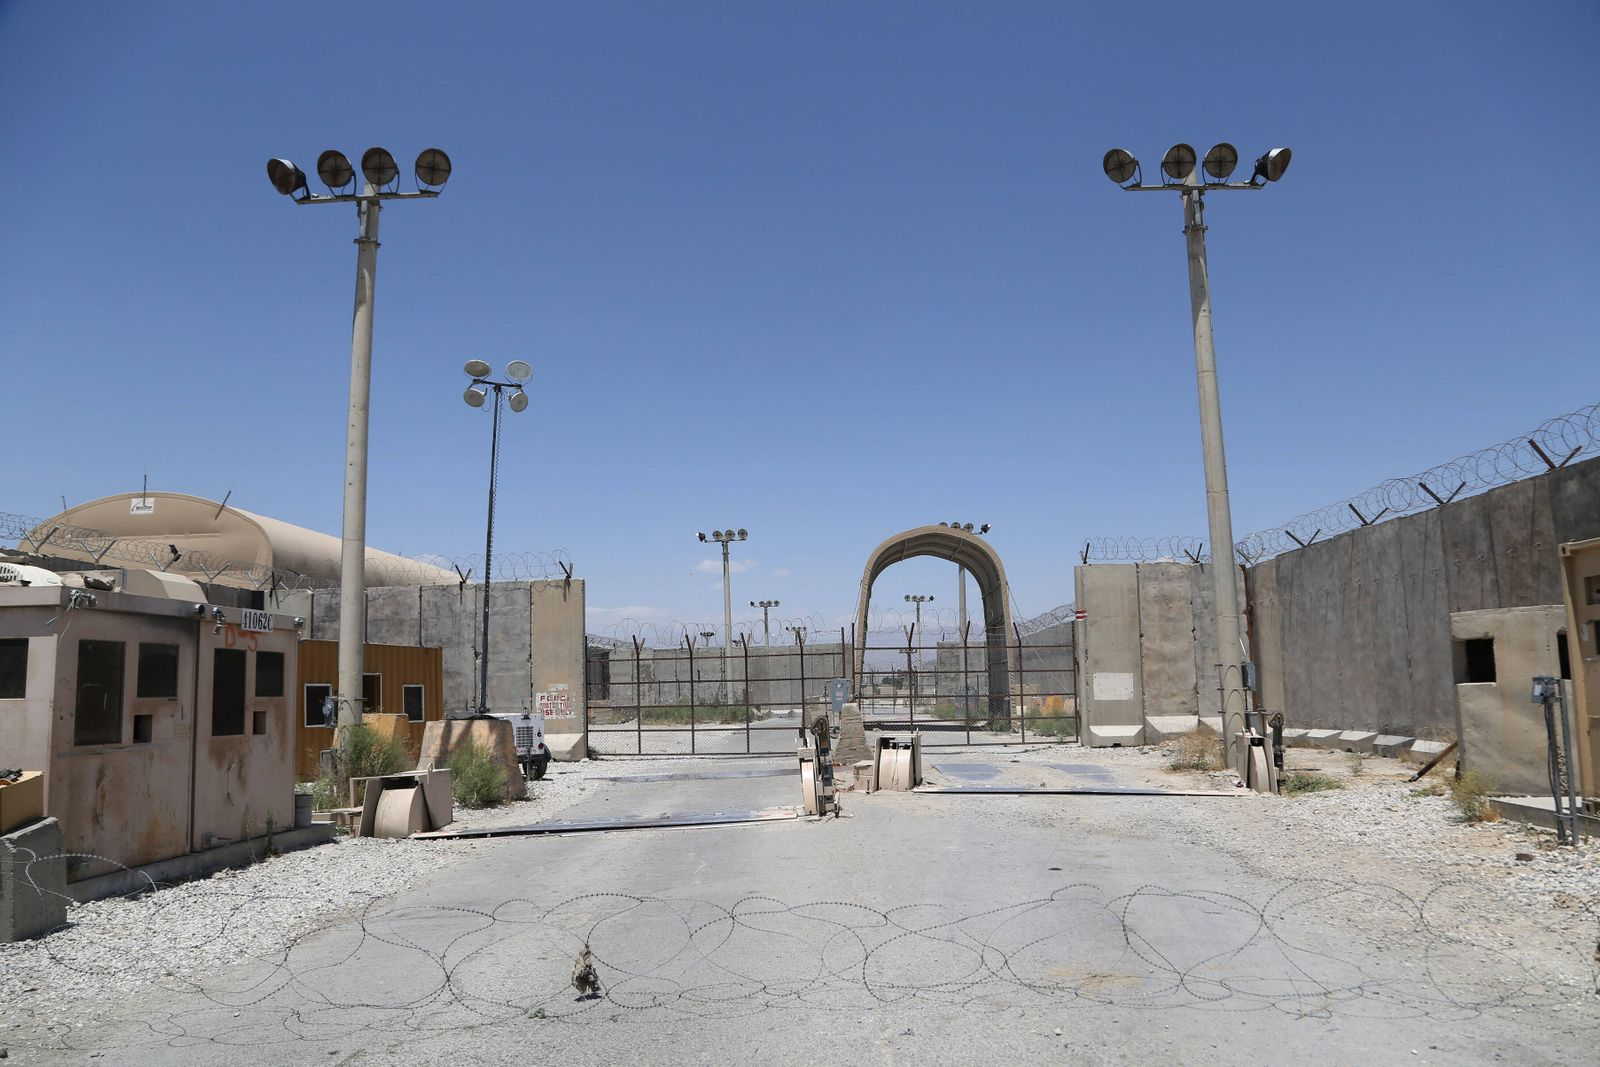 (210702) -- PARWAN, July 2, 2021 -- Photo taken on July 2, 2021 shows the Bagram Airfield after all U.S. and NATO forces